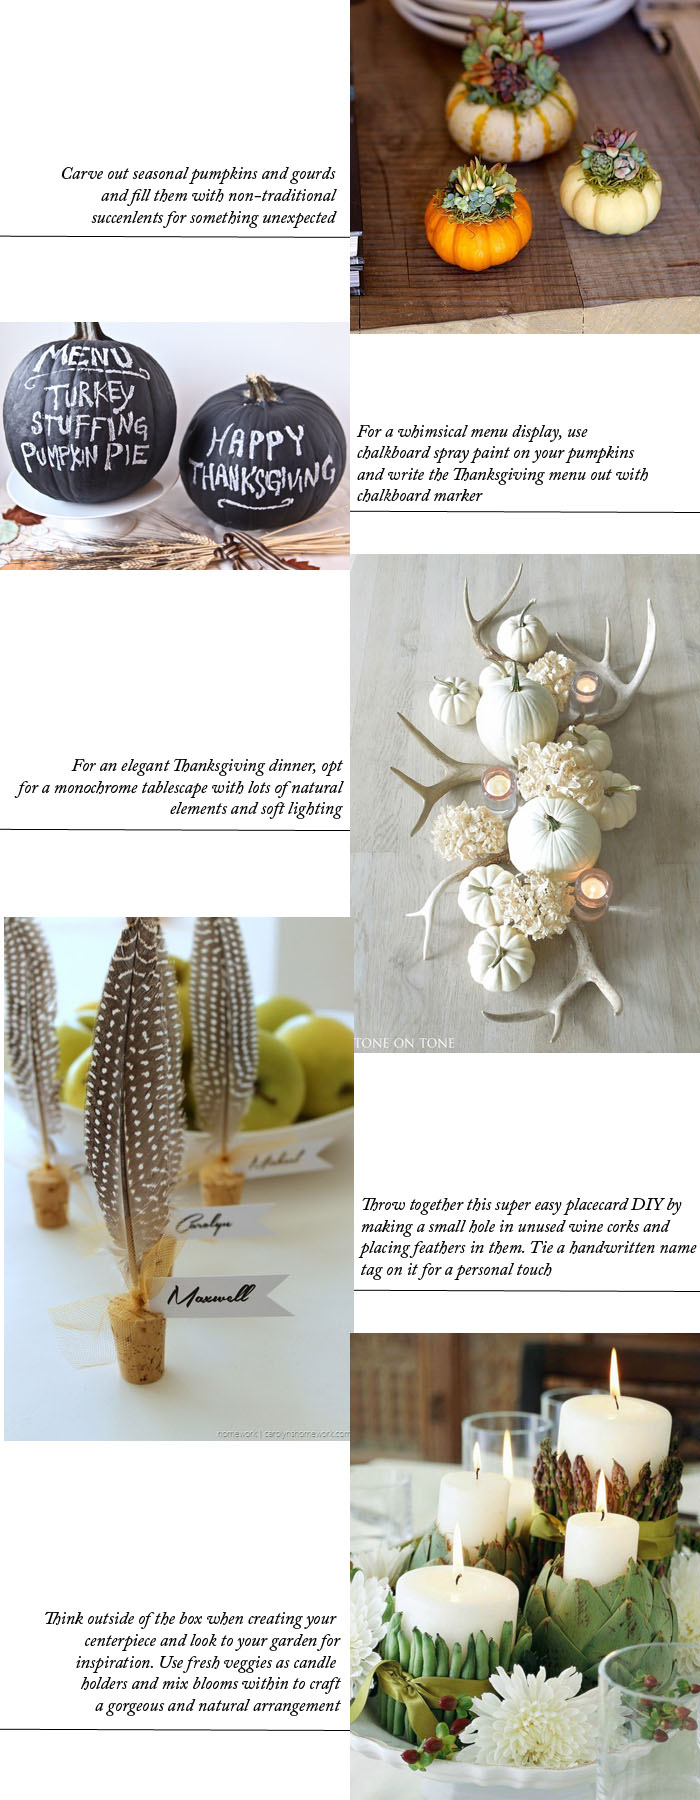 Thanksgiving ideas, centerpiece, tablescape